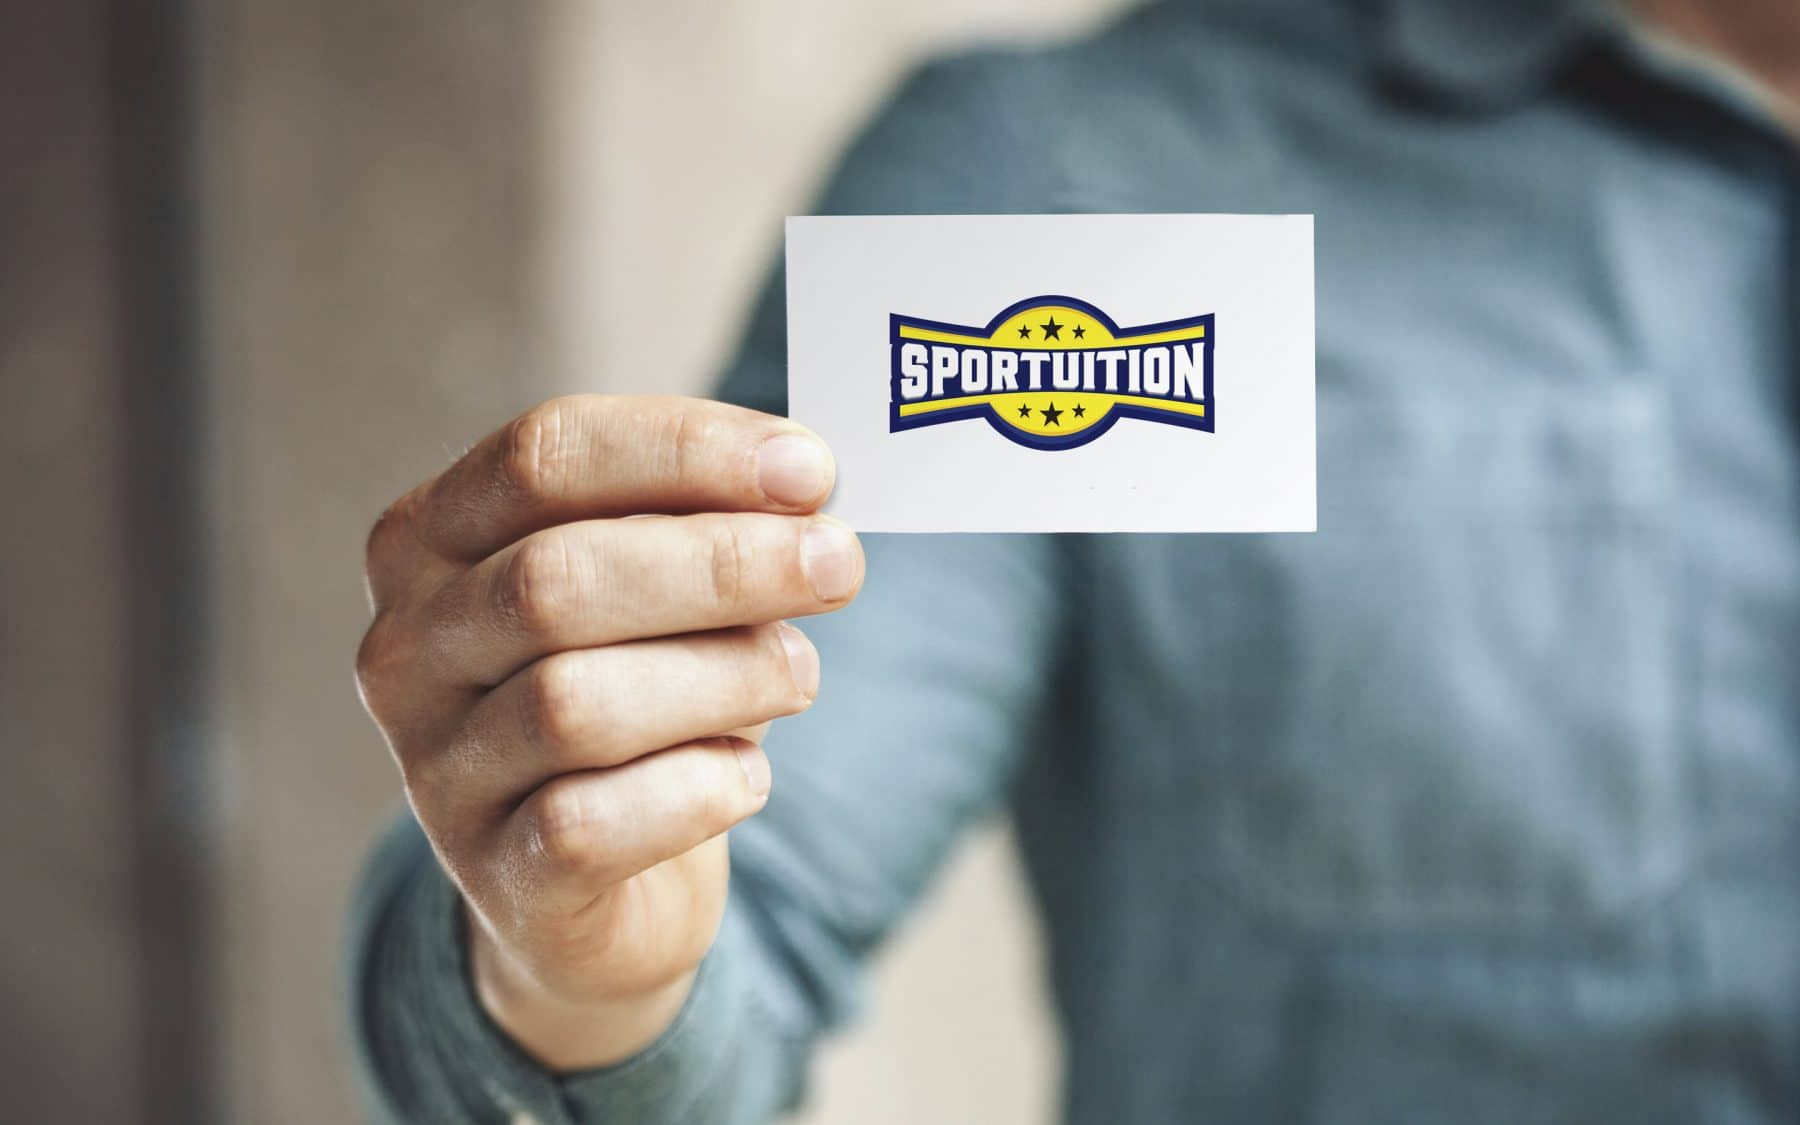 Sportuition 1